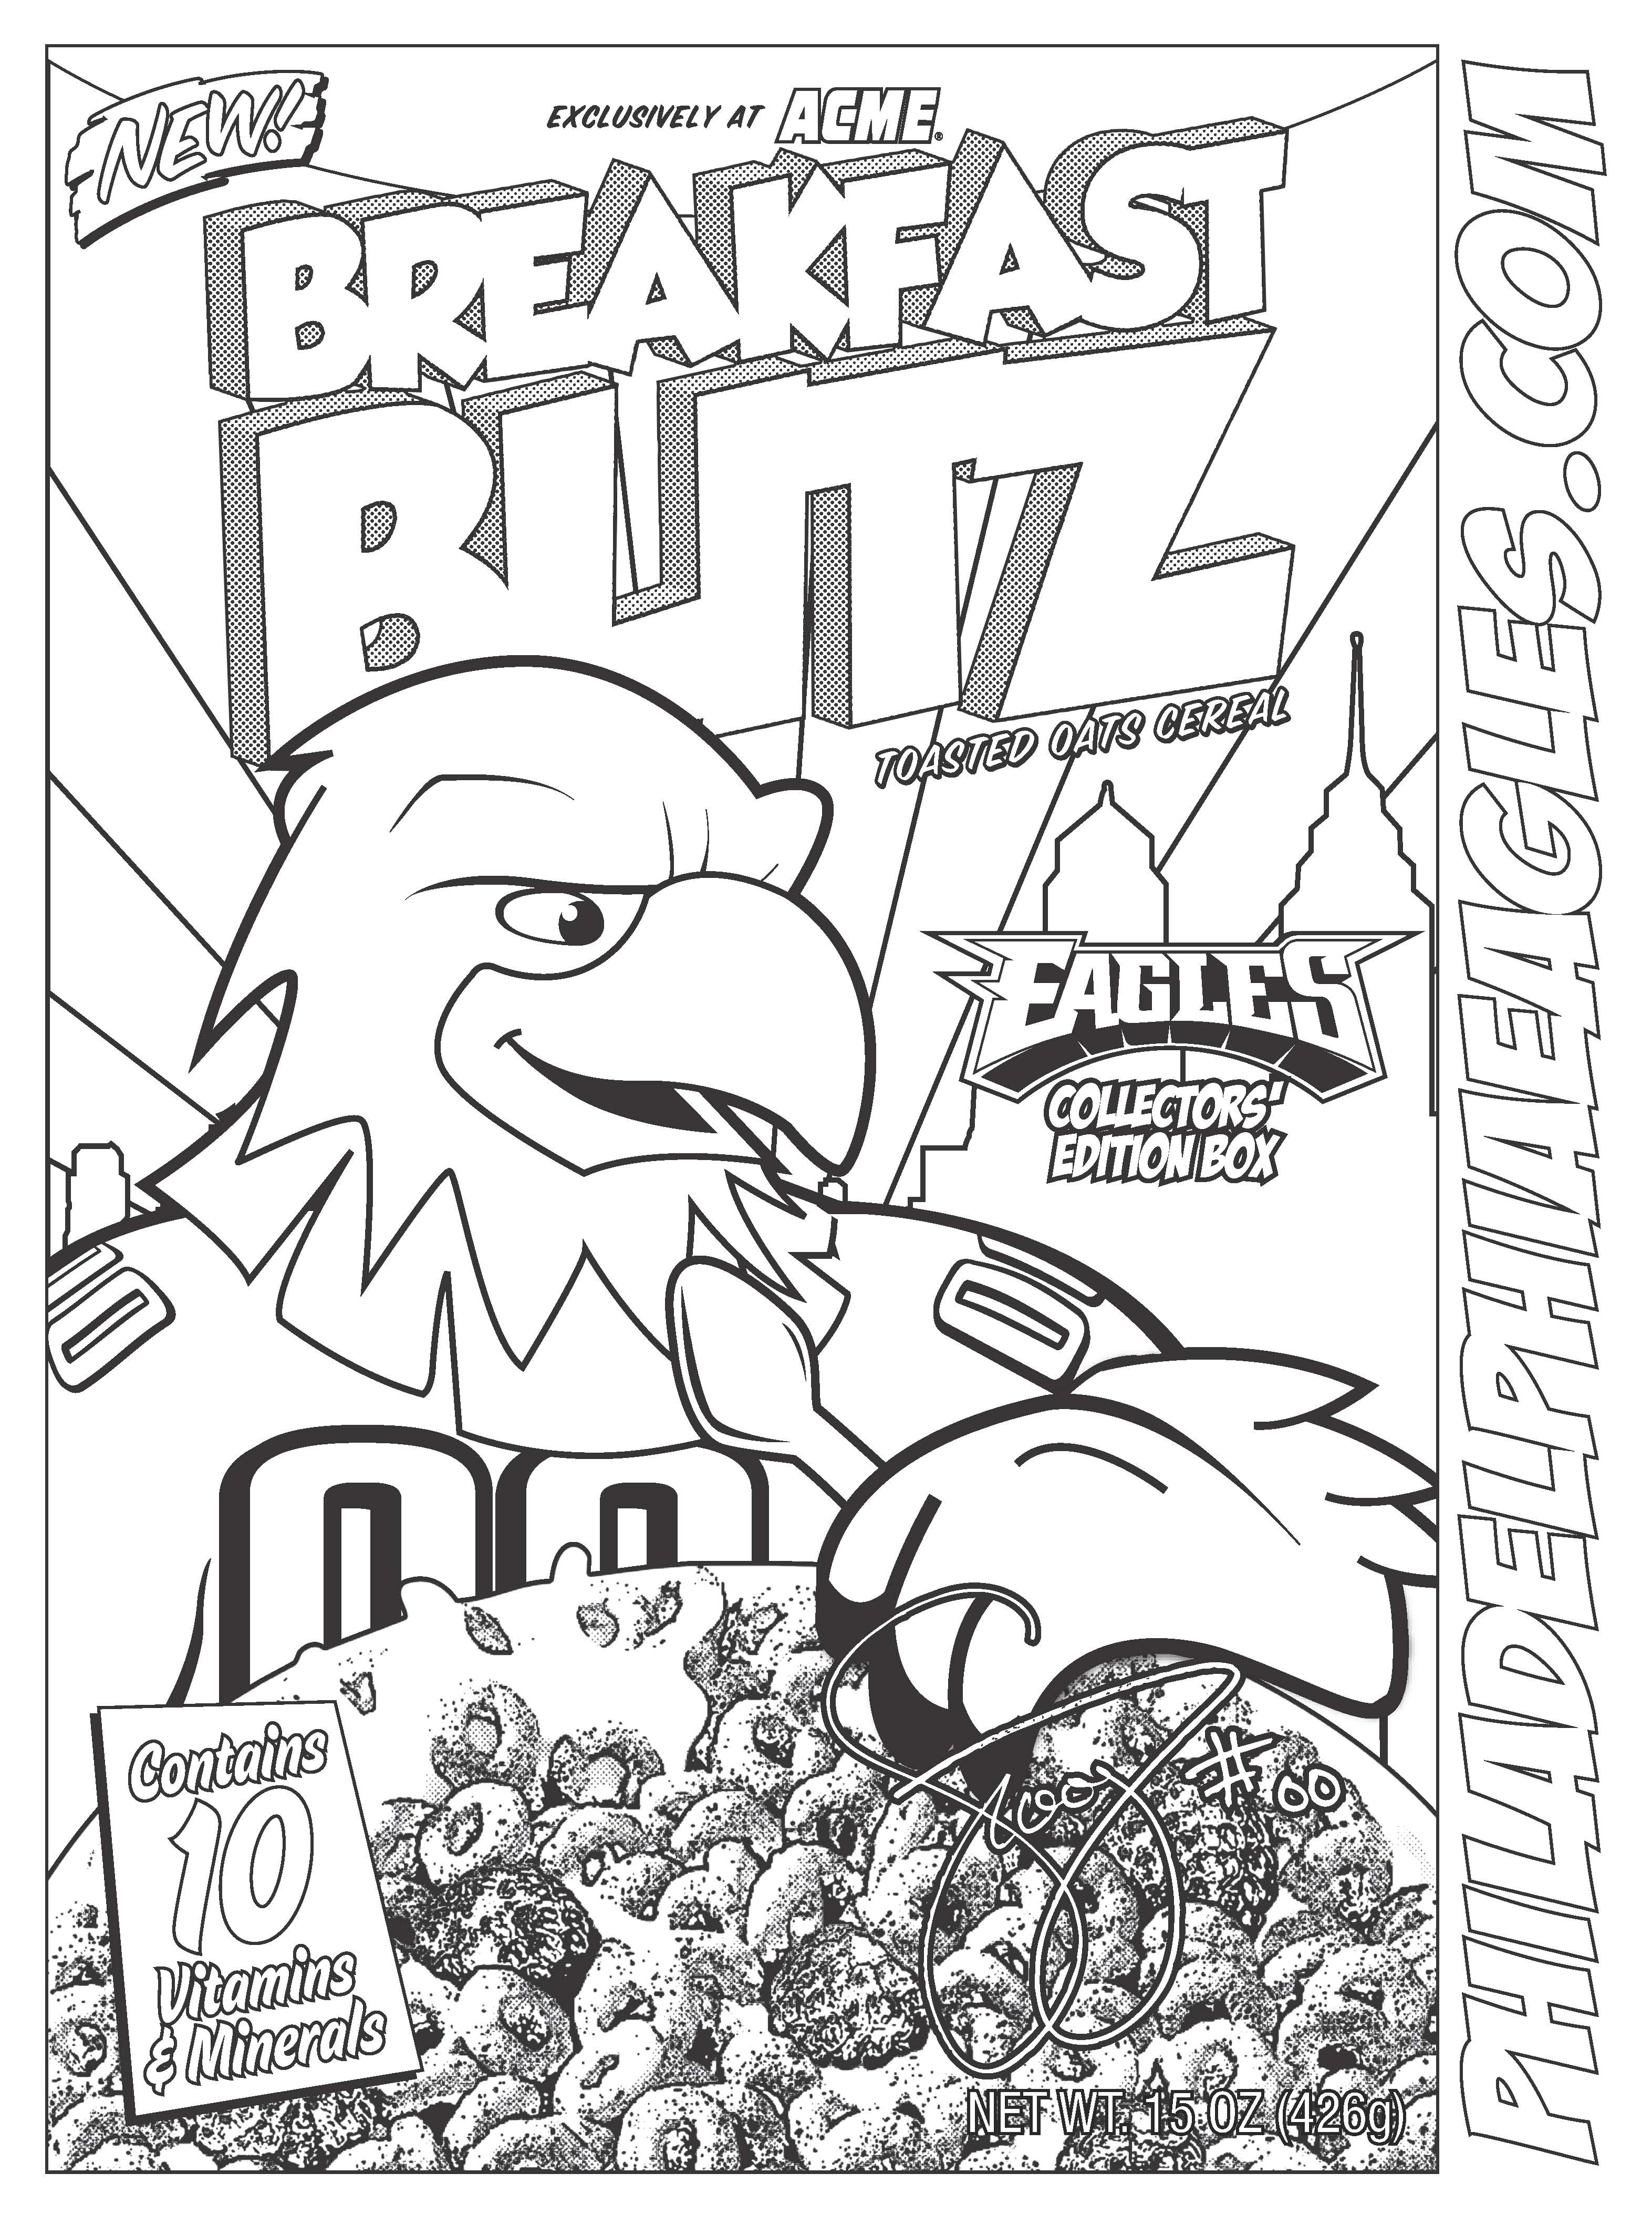 seahawks football russell wilson jersey coloring pages az